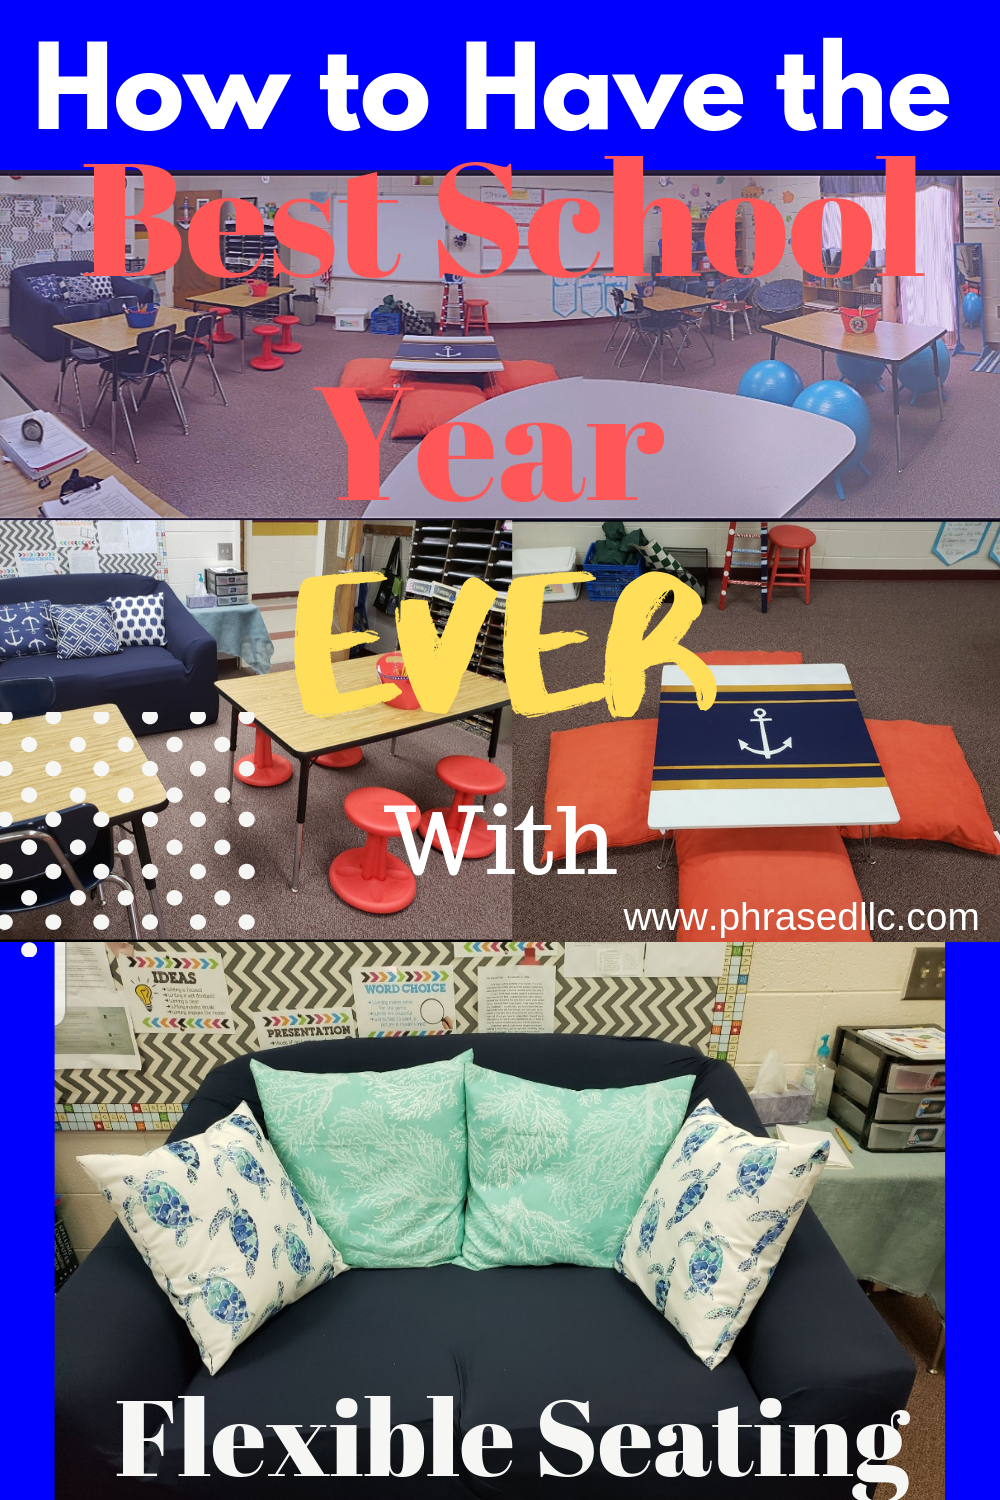 Find out how to have the best school year by implementing a flexible seating classroom.